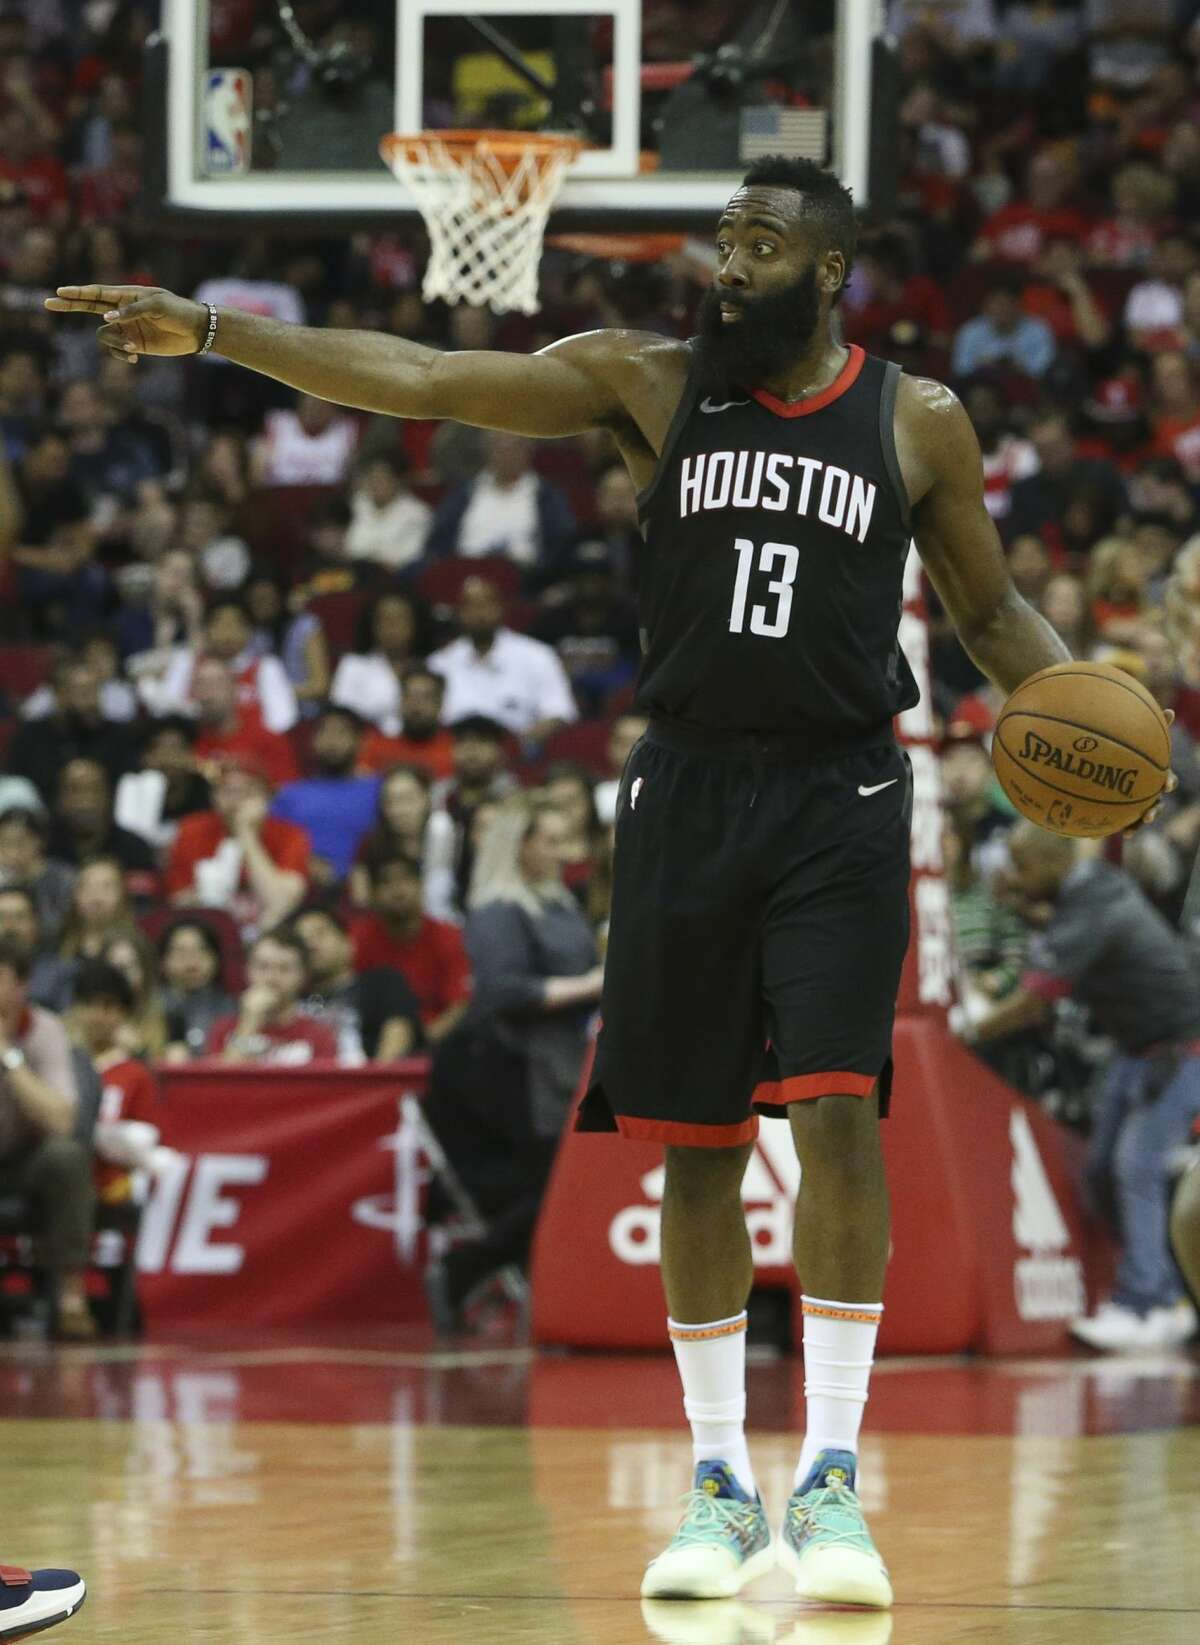 Houston Rockets guard James Harden (13) instructs his teammates during the first quarter of the NBA game against the New Orleans Pelicans at Toyota Center on Saturday, March 24, 2018, in Houston. ( Yi-Chin Lee / Houston Chronicle )